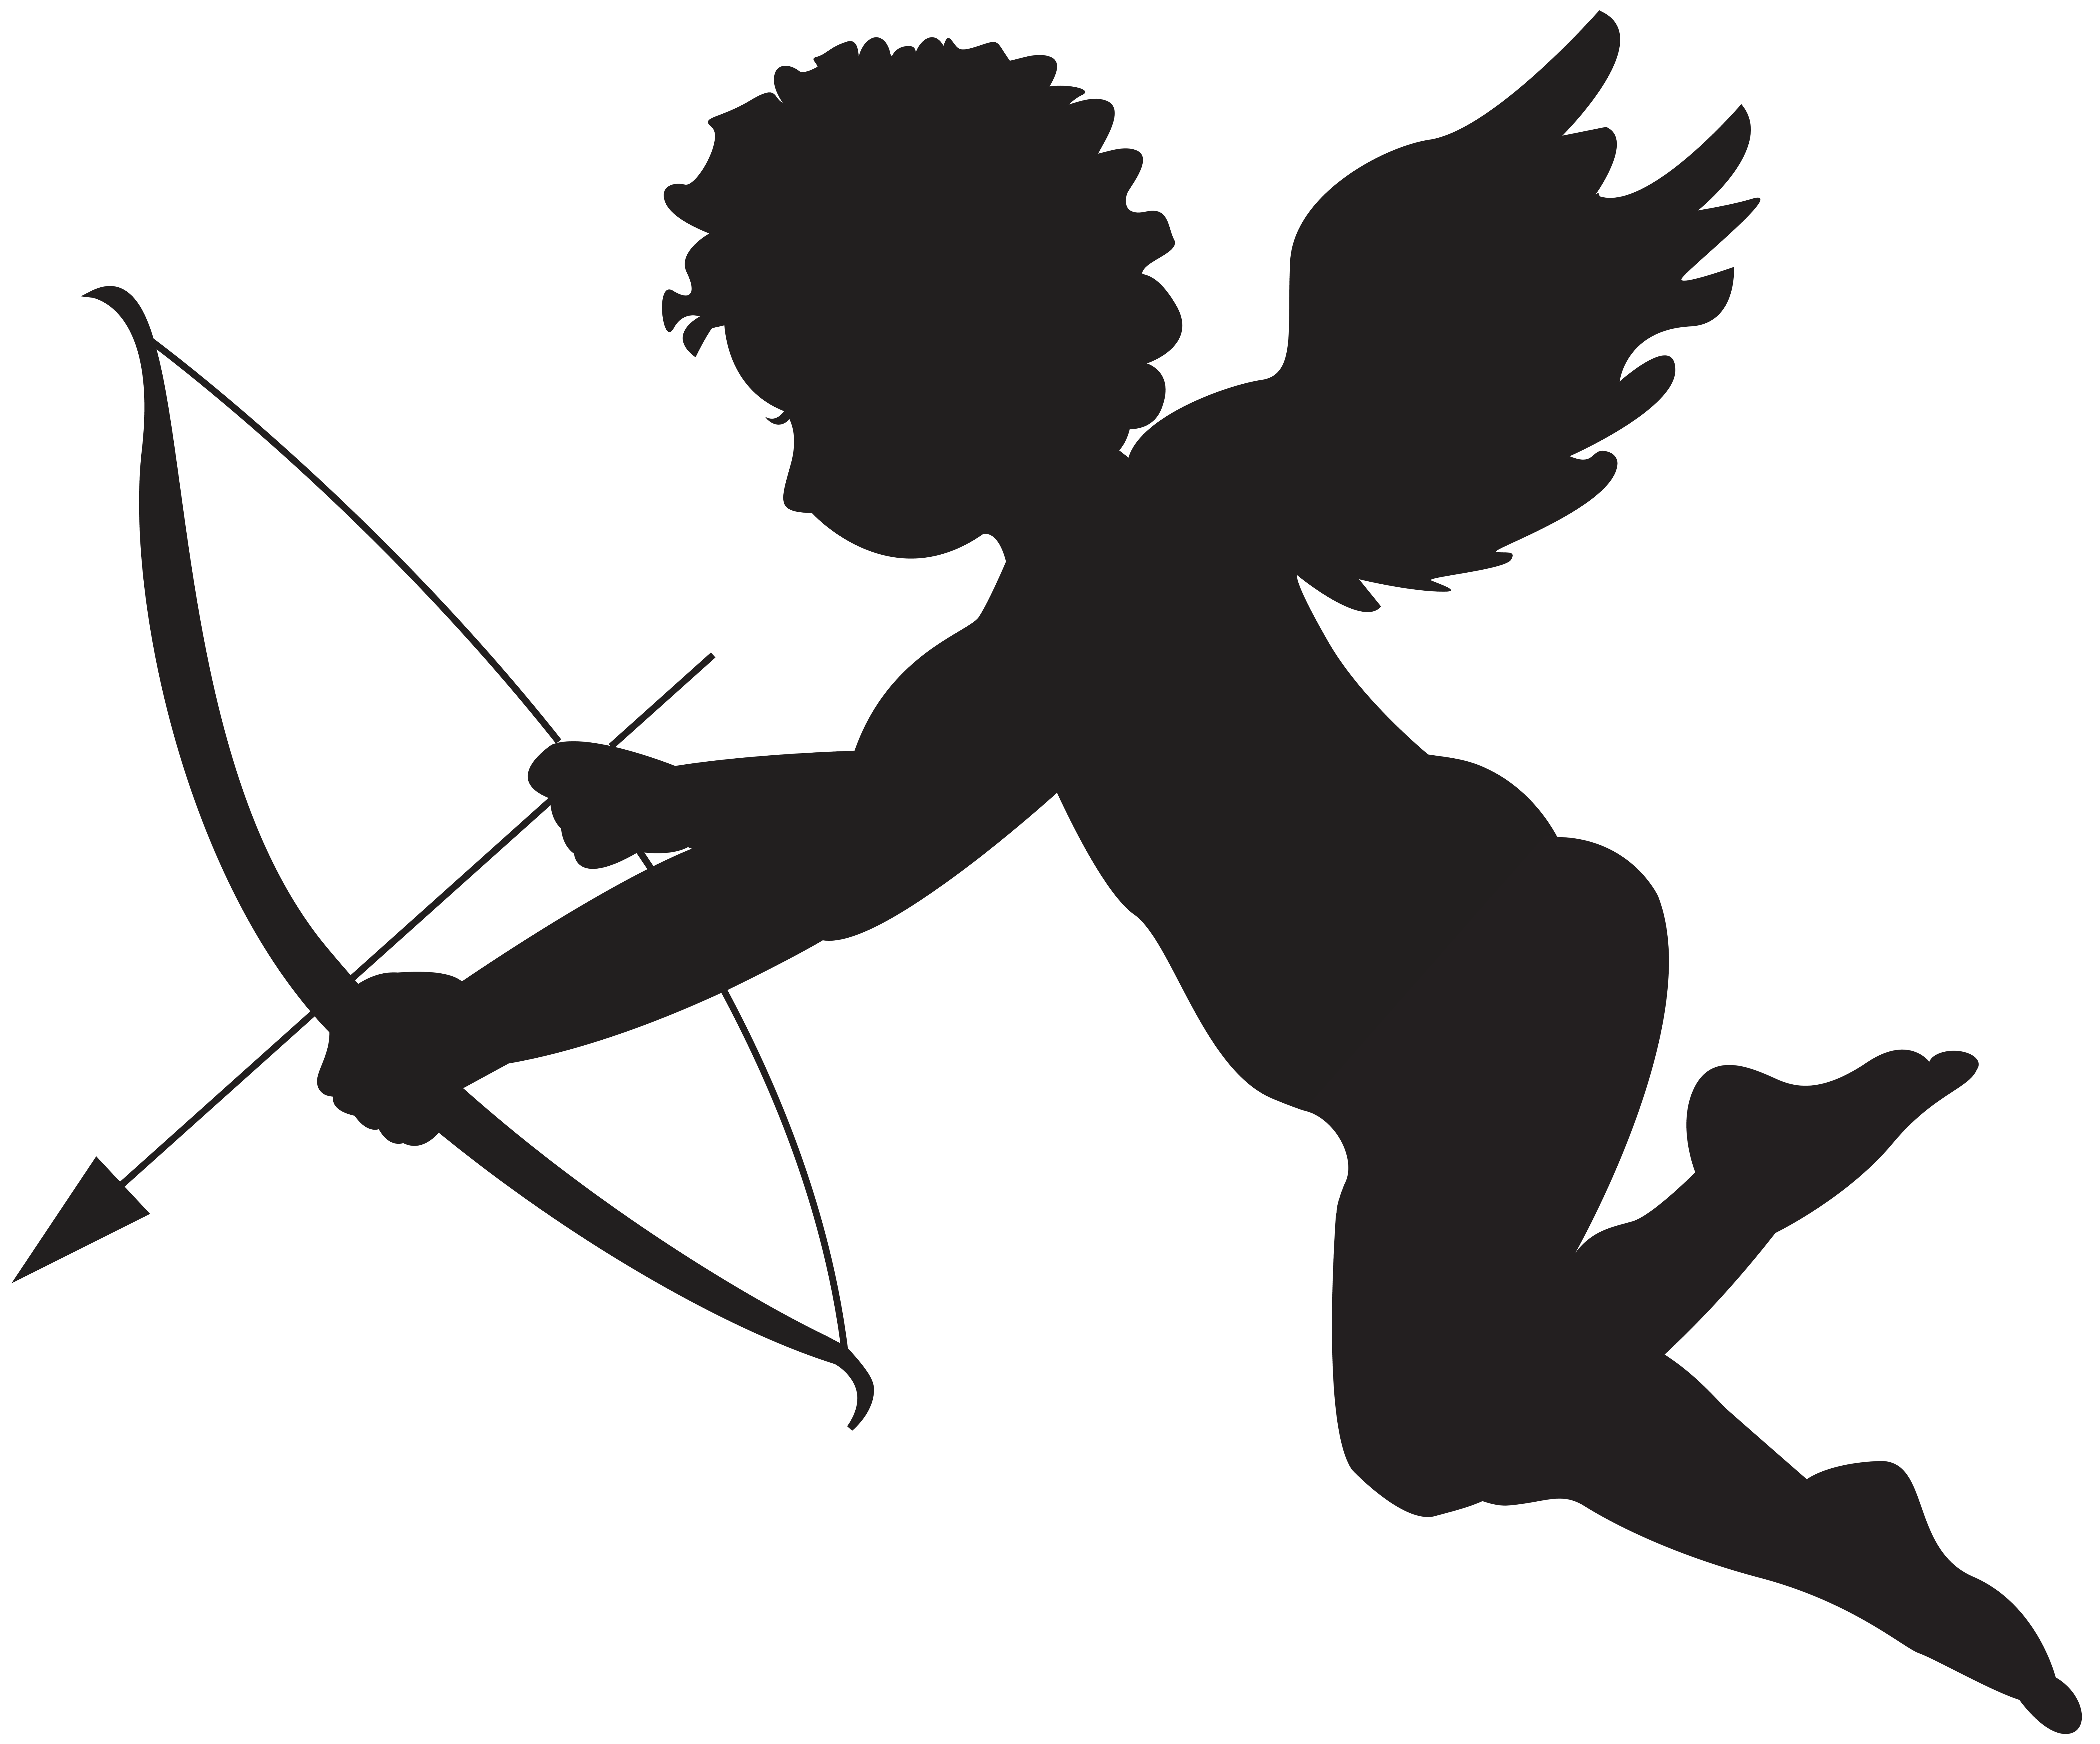 image royalty free Cupid transparent. Png image gallery yopriceville